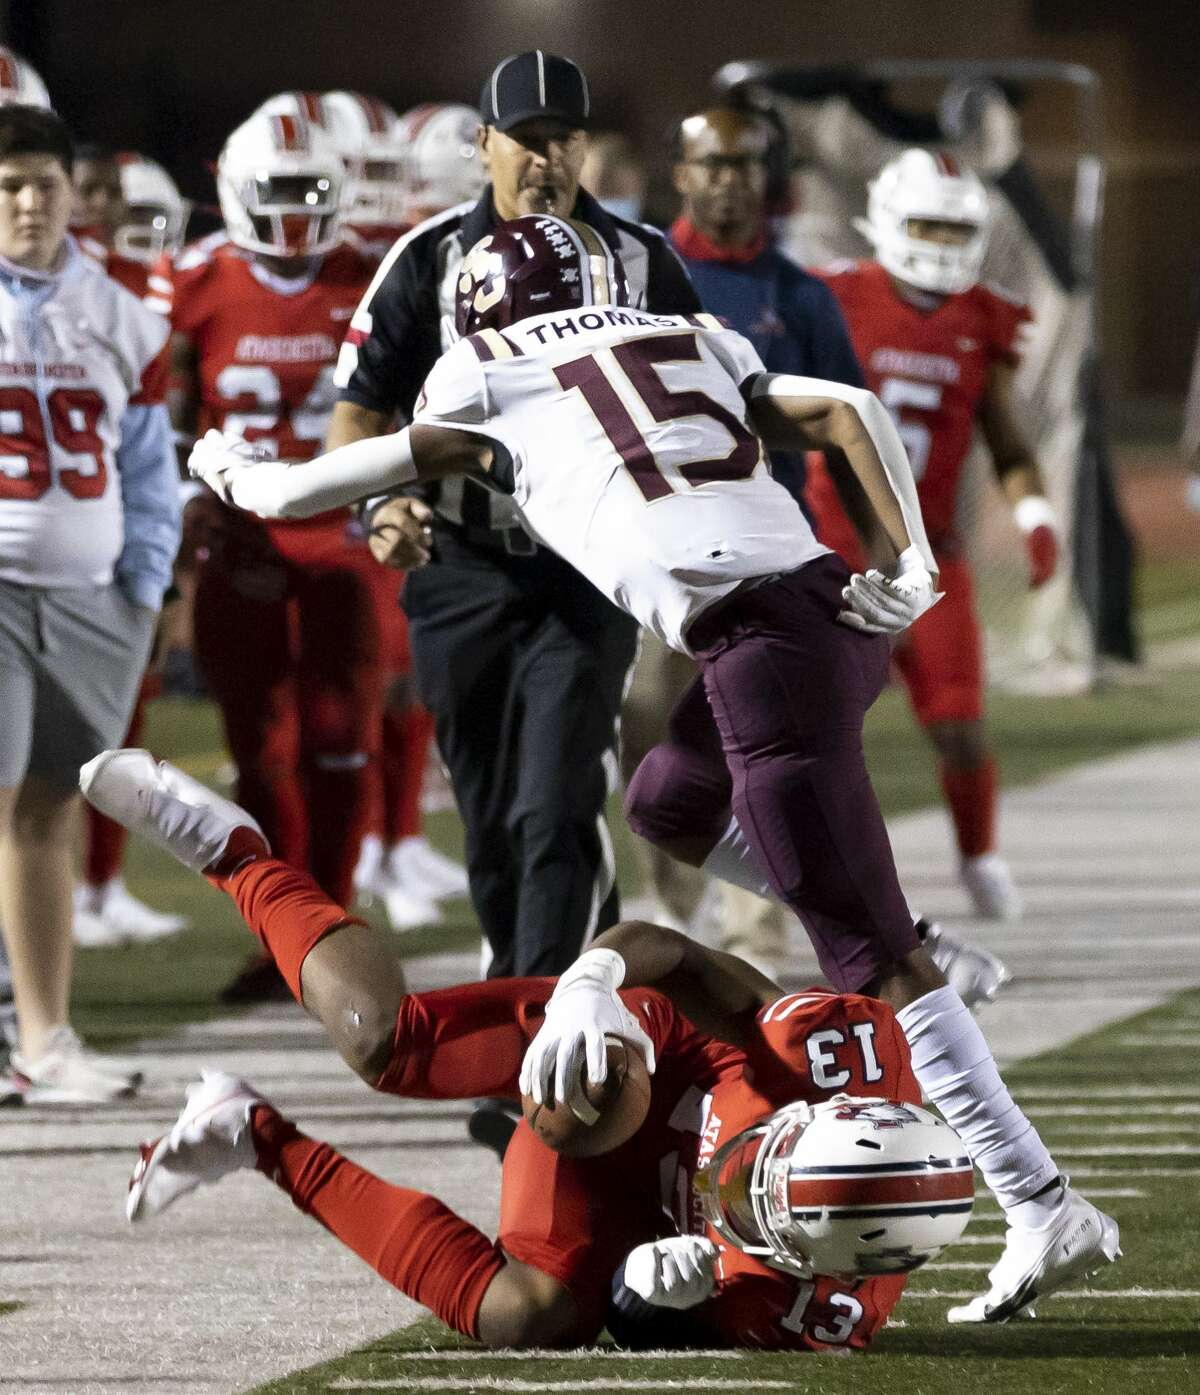 Atascocita wide receiver Landen King (13) is tackled out of bounds by Summer Creek defensive back Myles Thomas (15) during the third quarter of a District 21-6A football game at Turner Stadium in Humble, Friday, Nov. 6, 2020.